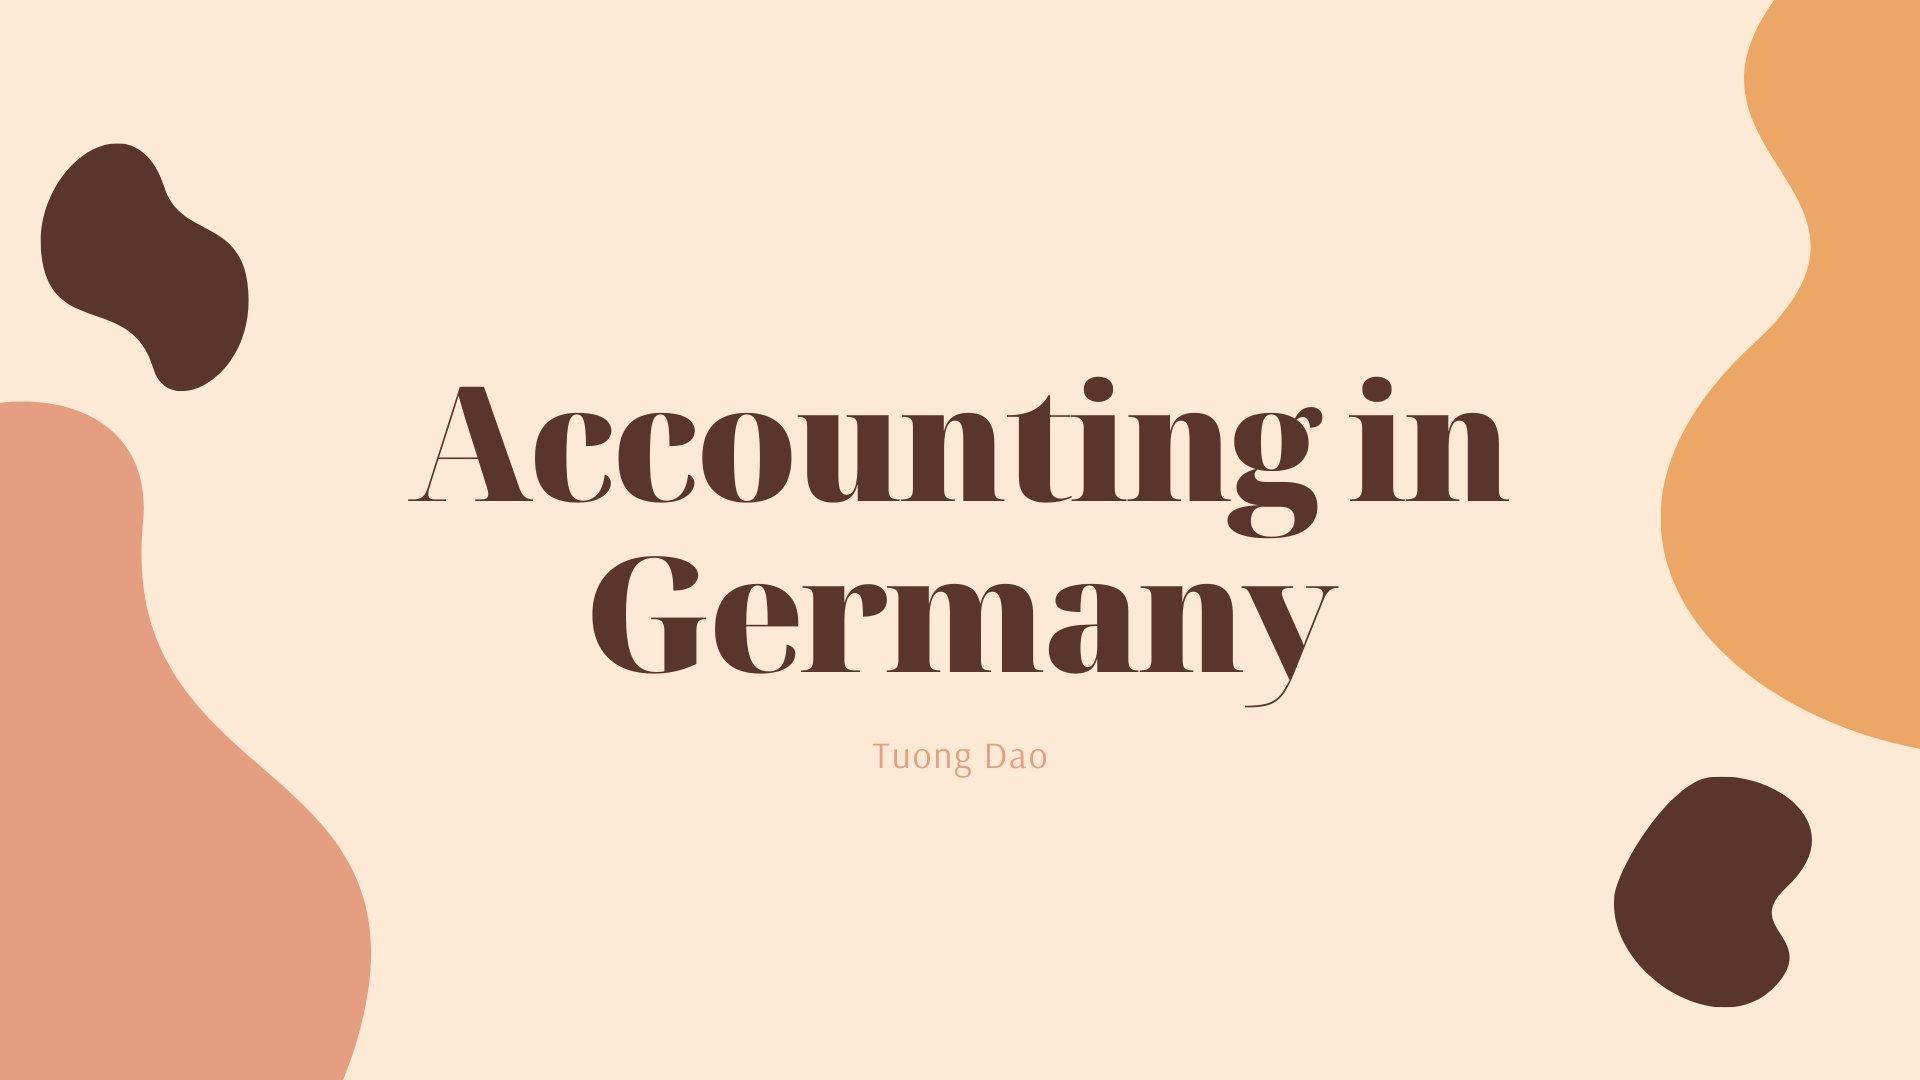 Accounting in Germany